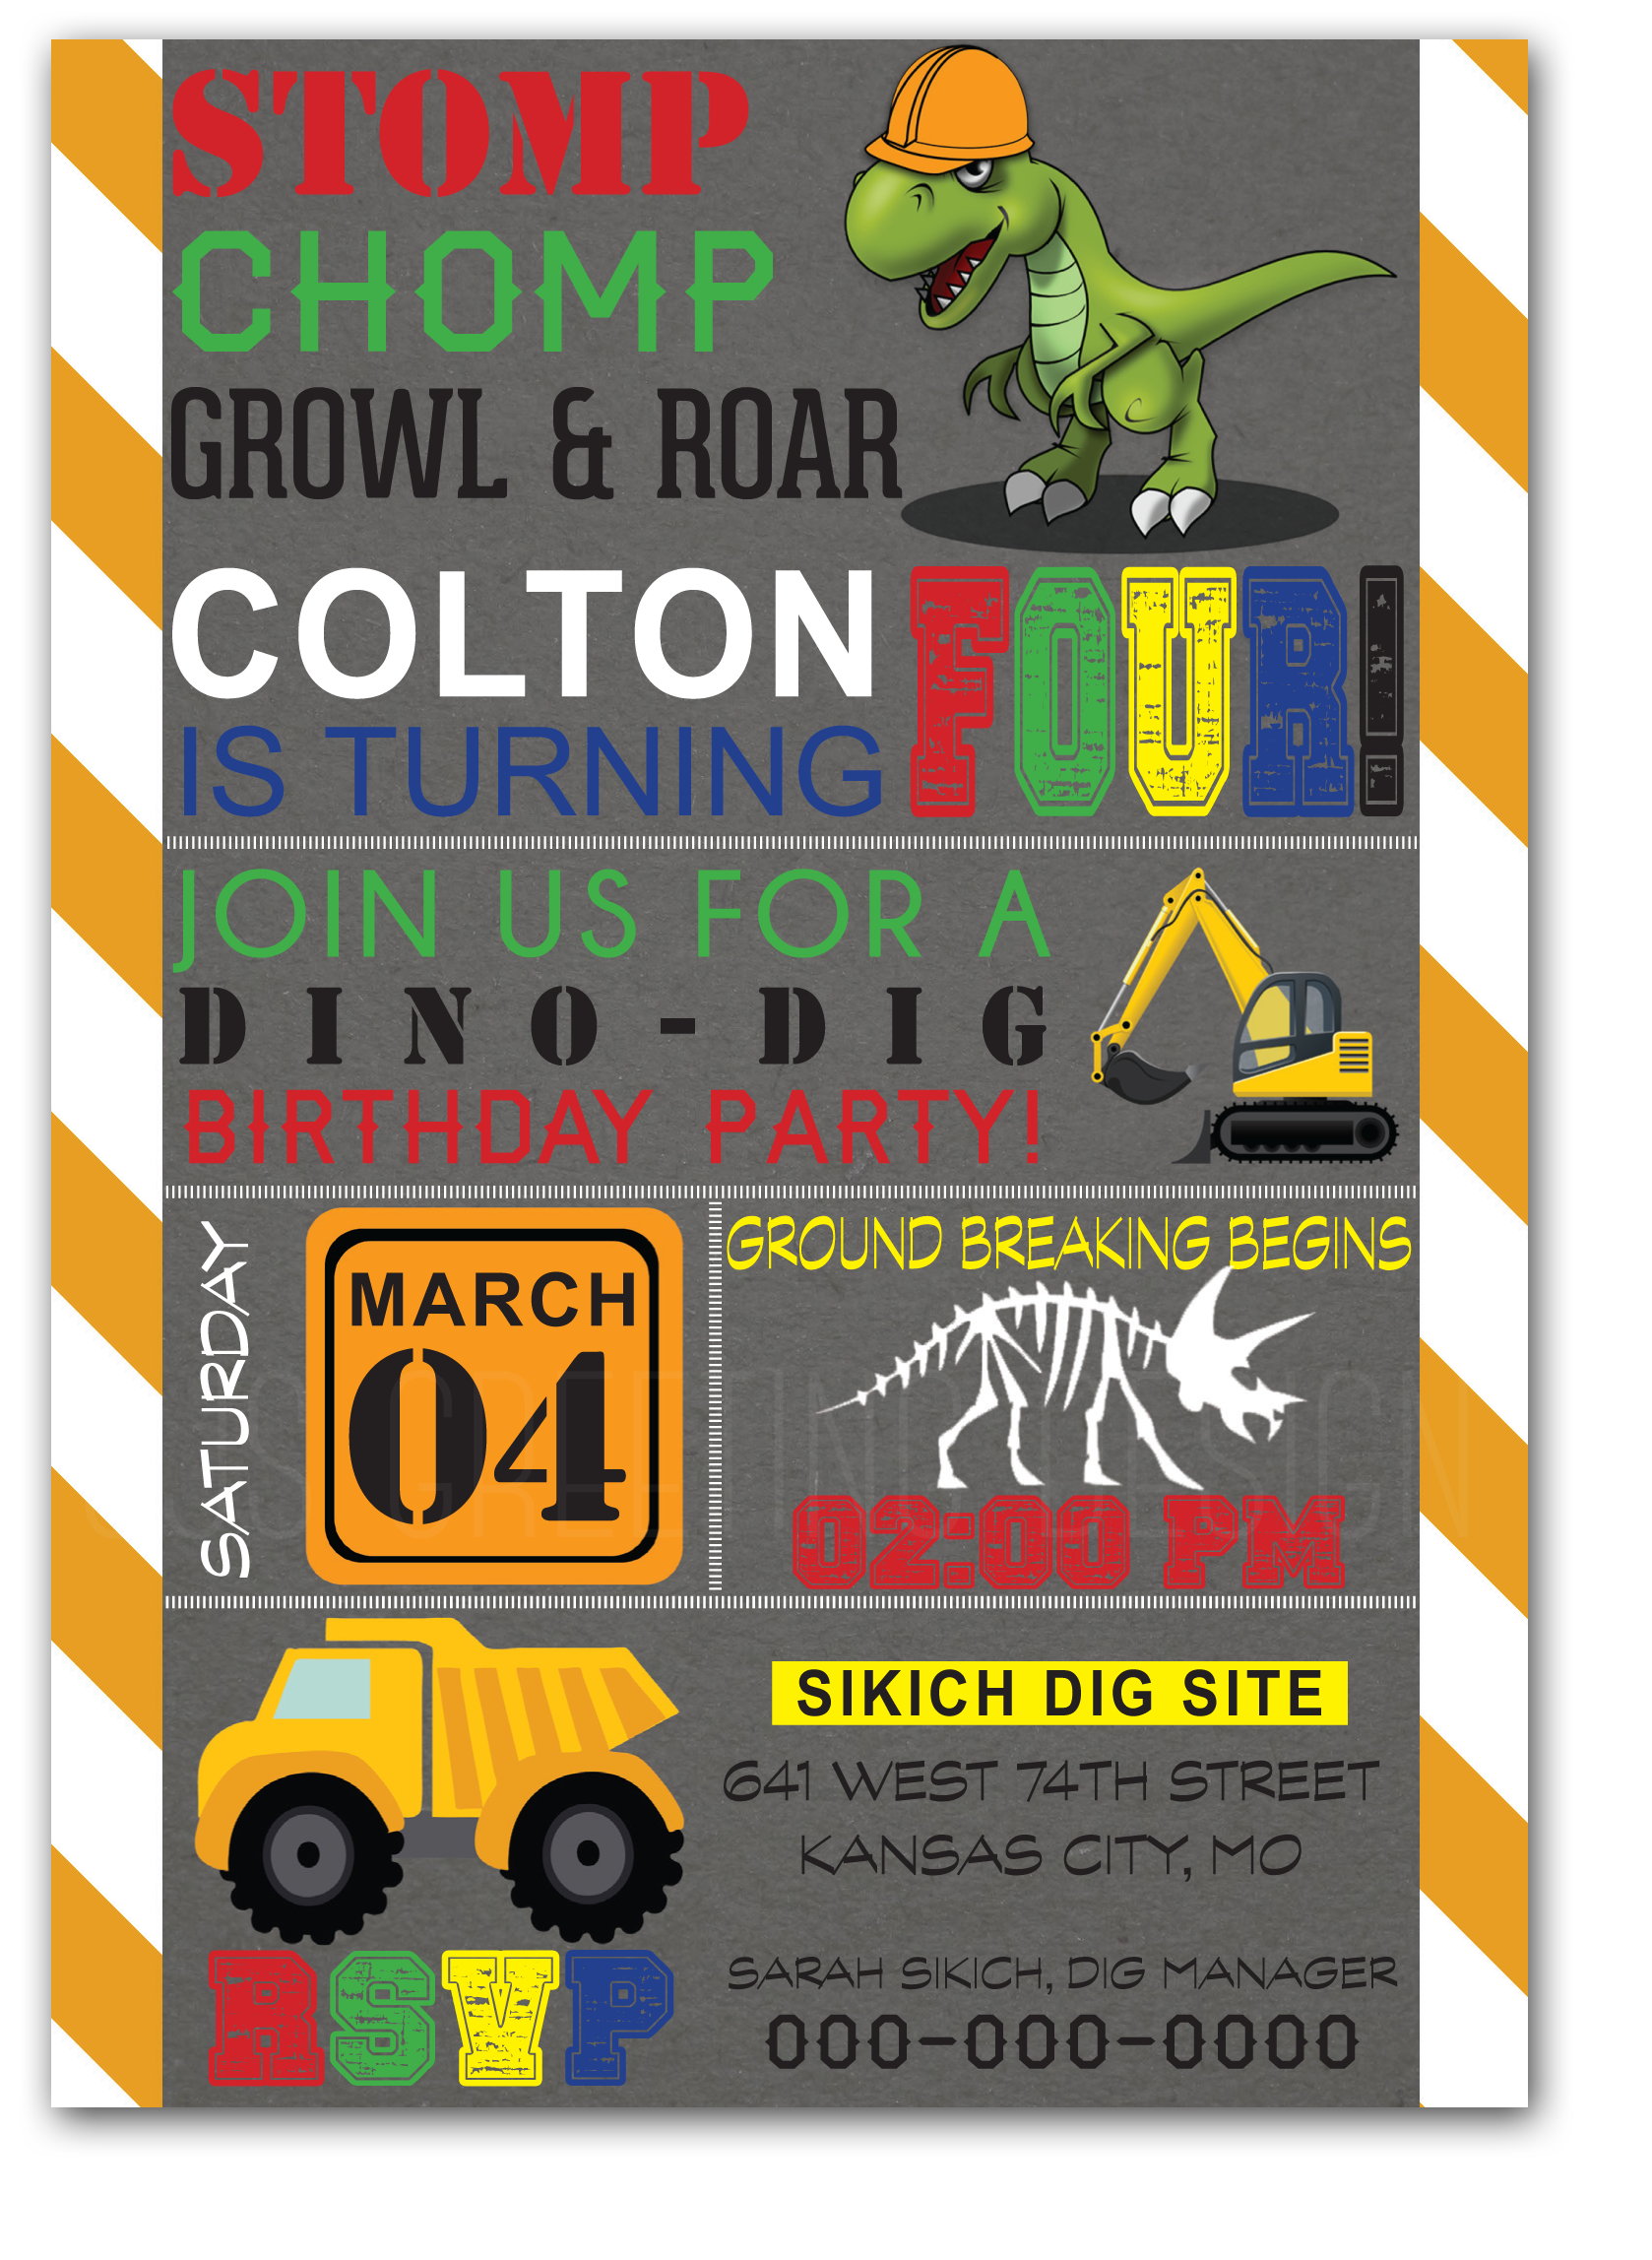 construction dinosaur party sjsgreetingdesign